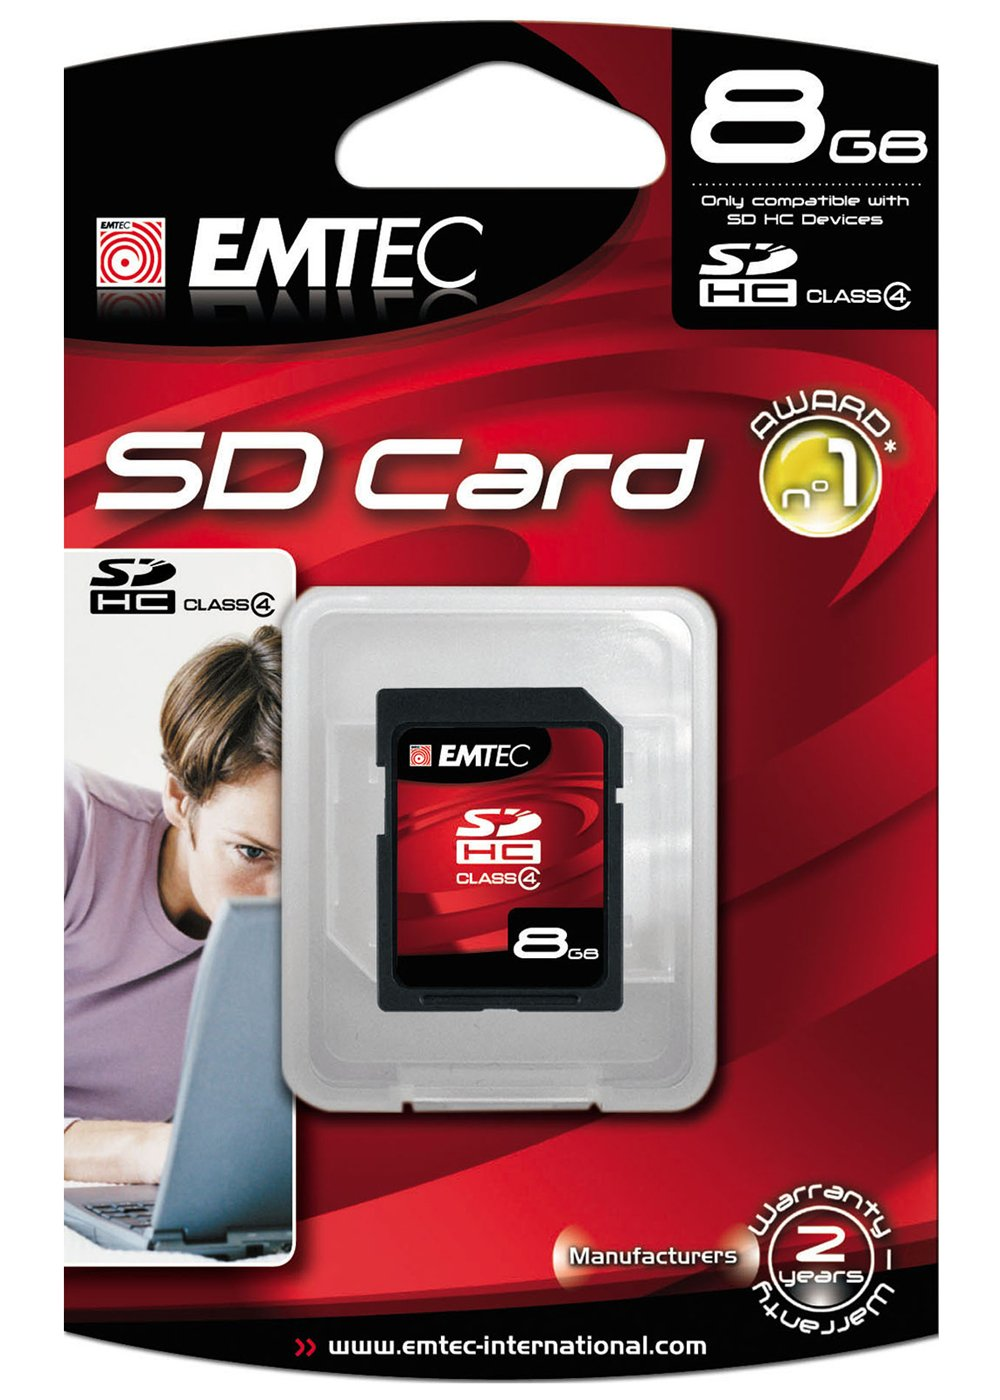 EMTEC Class 4 SDHC Flash Memory Card, 8 GB